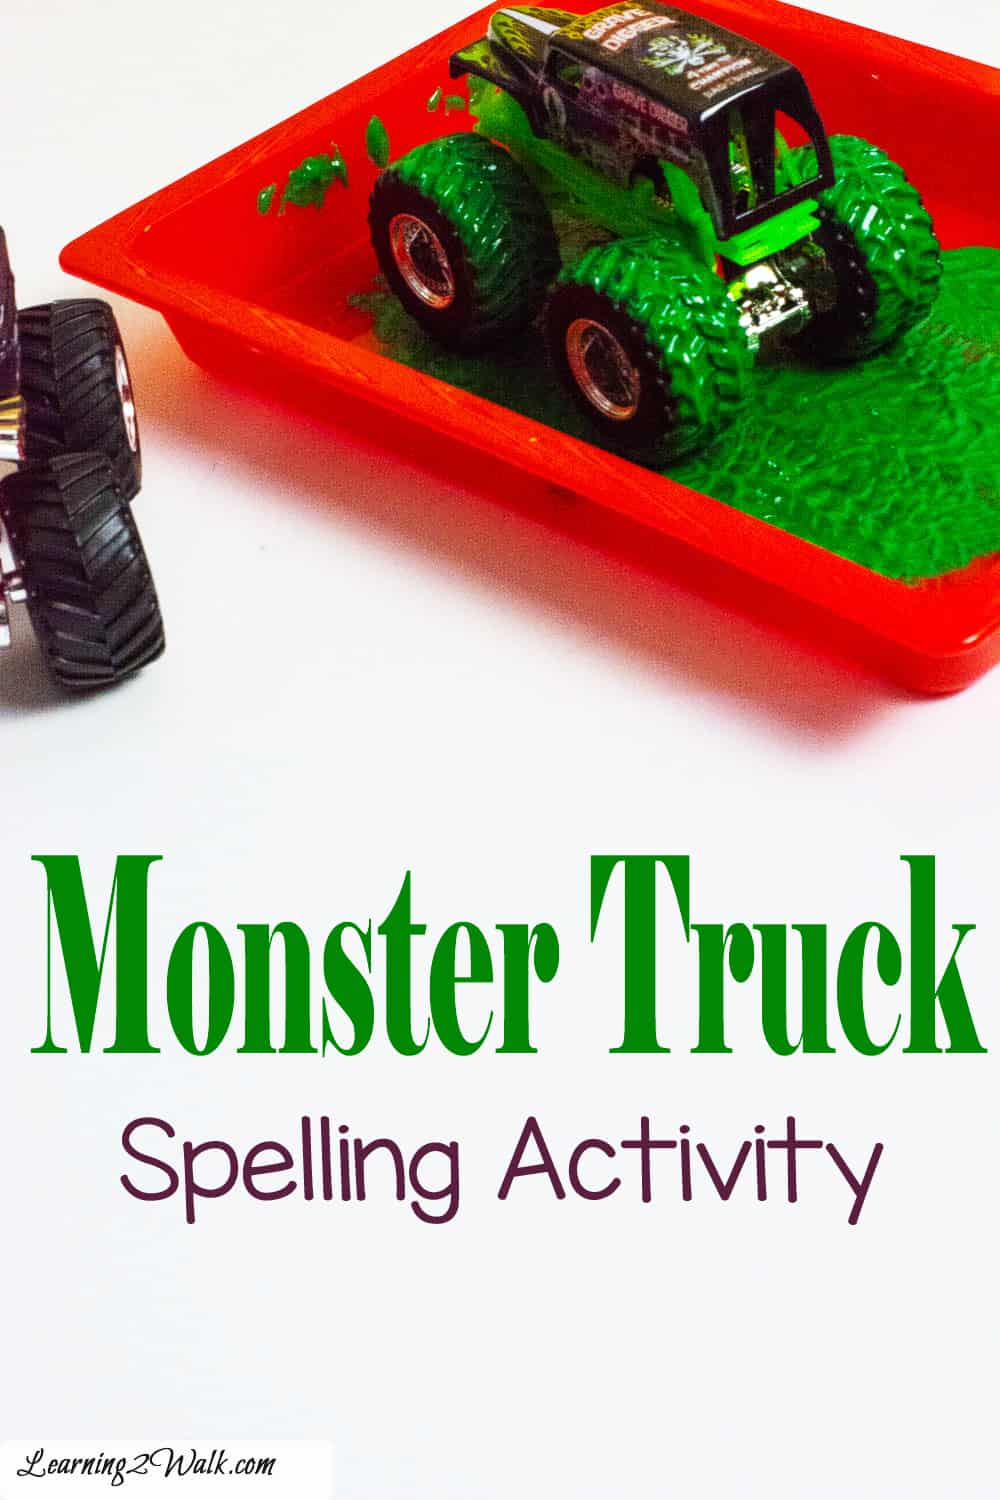 I love finding and creating fun spelling games and spelling activities for my daughter to practice. This Monster Truck Spelling Practice definitely fit the bill.